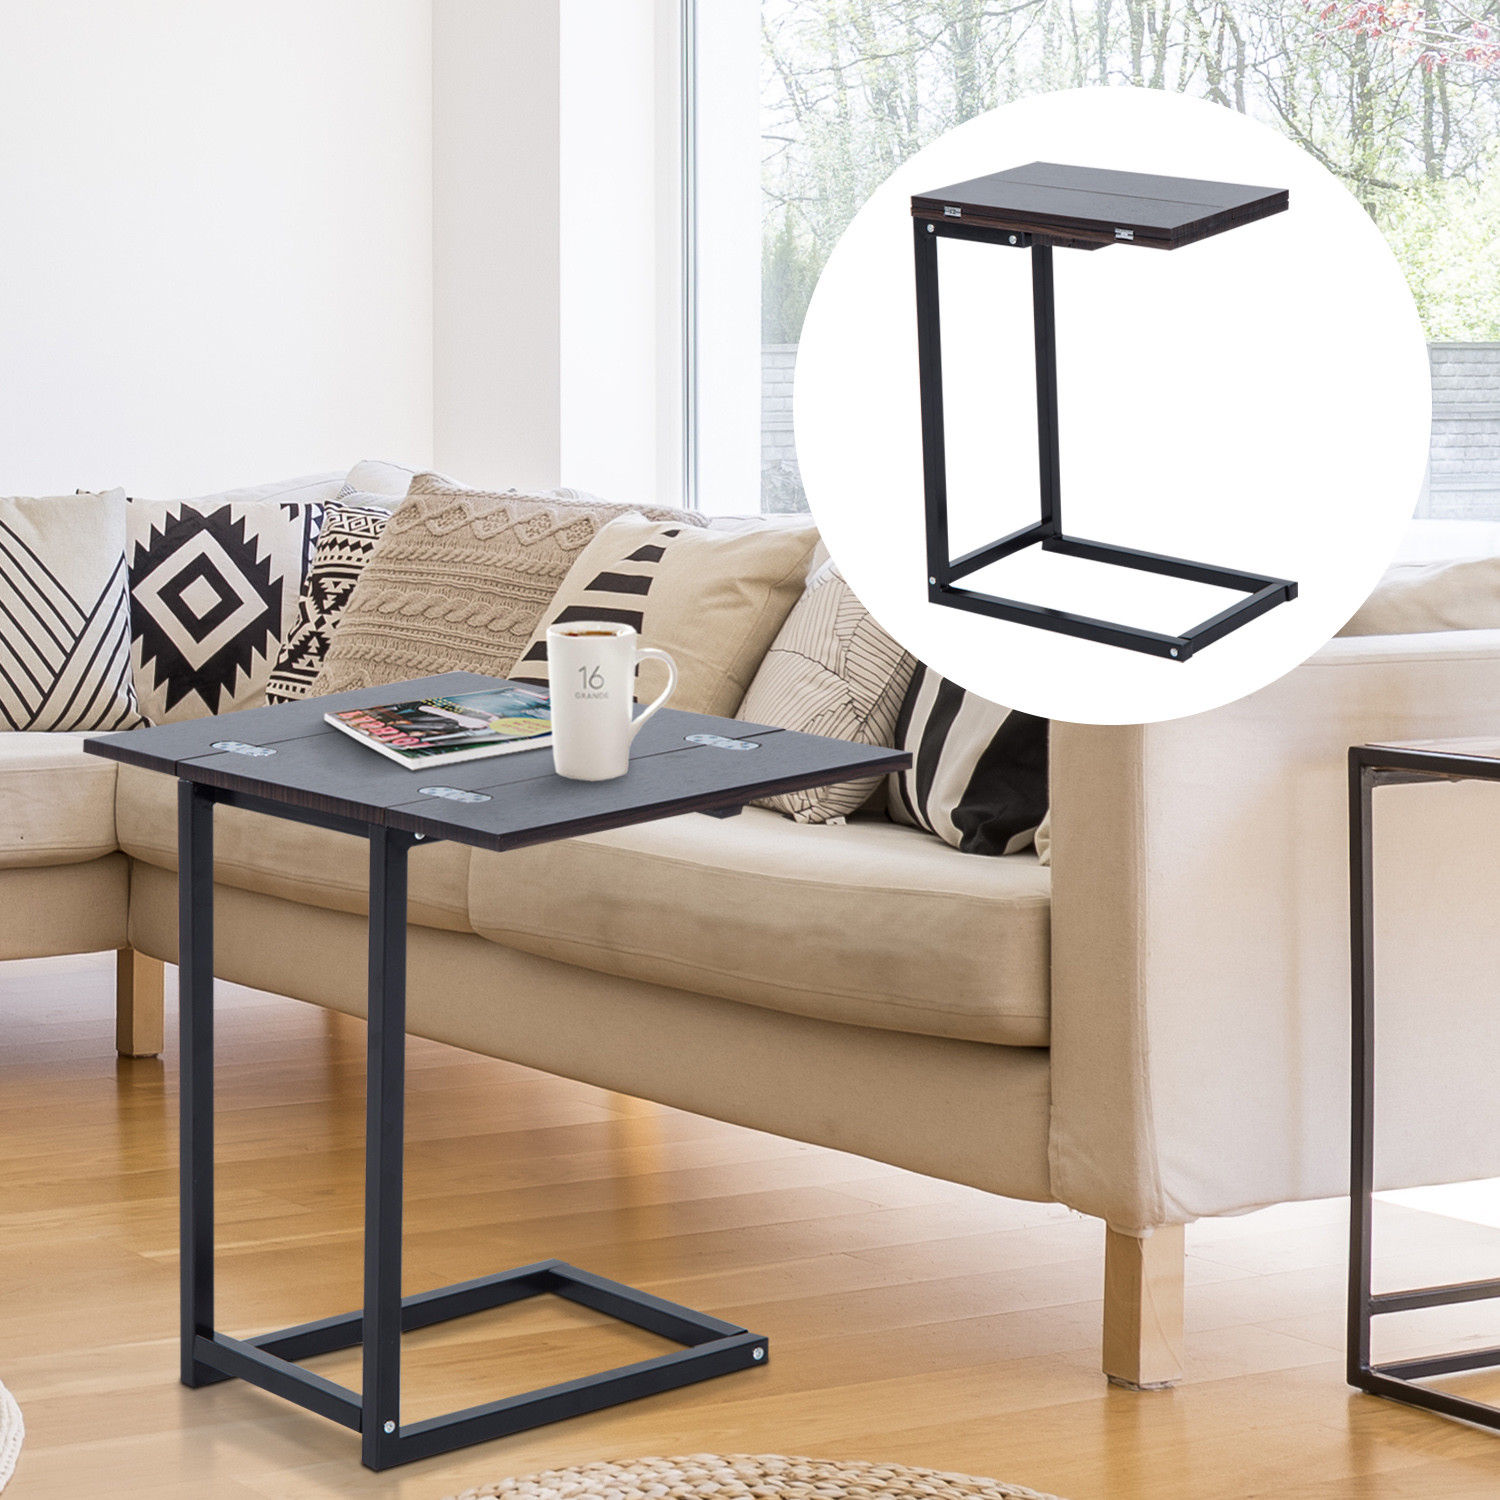 Details about expandable side end tray table folding top laptop coffee holder modern furniture